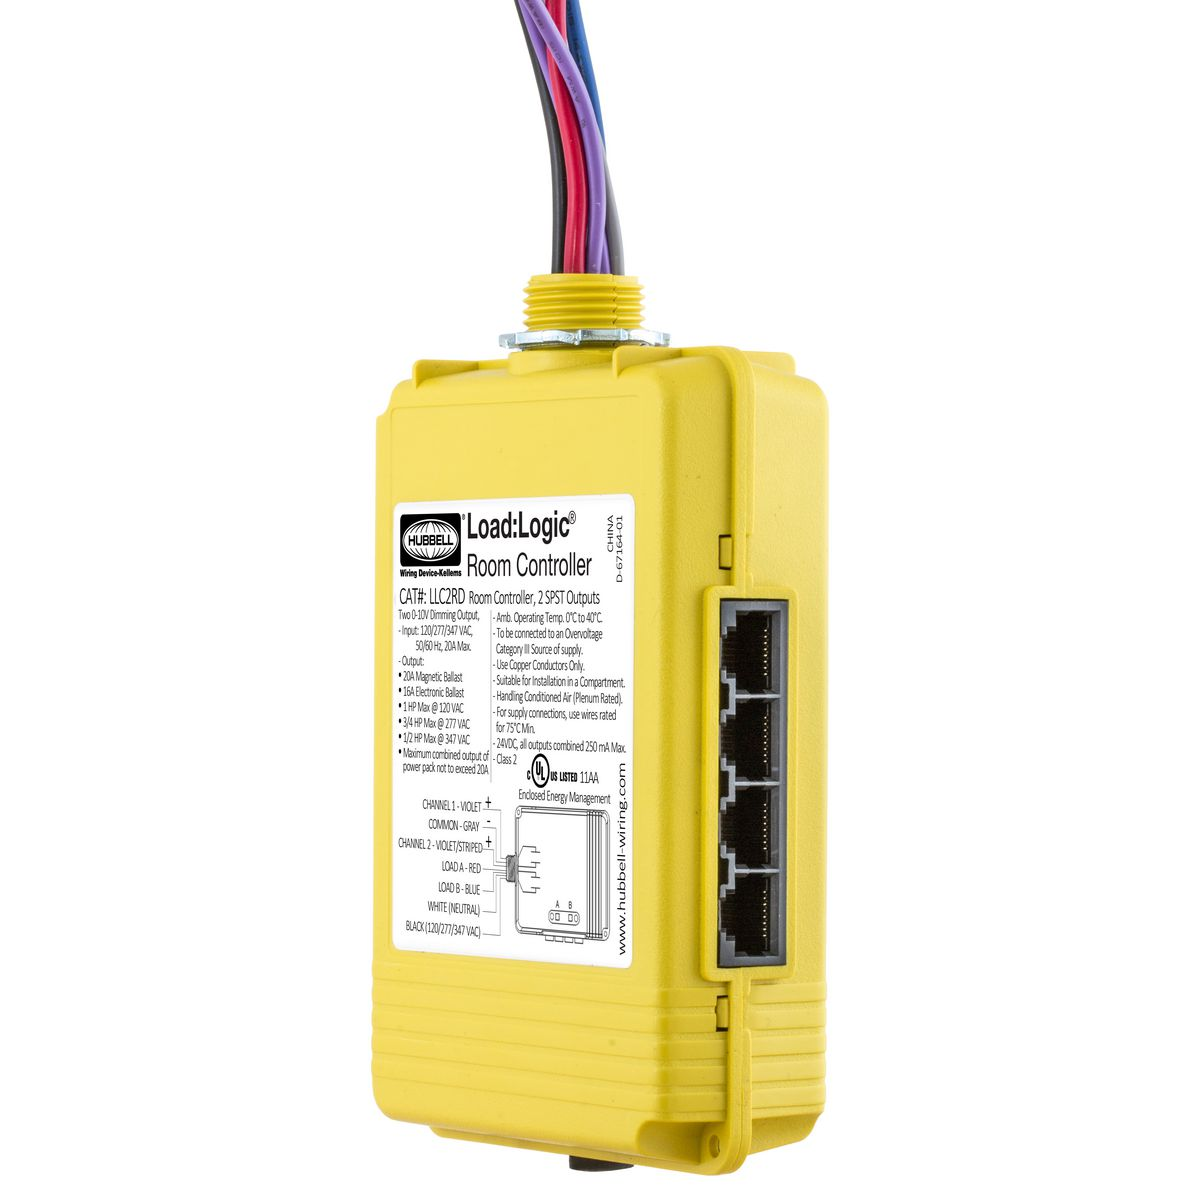 llc2rd automatic receptacle control lighting controls wiring rh hubbell com hubbell wiring device-kellems distributors hubbell wiring devices online catalog